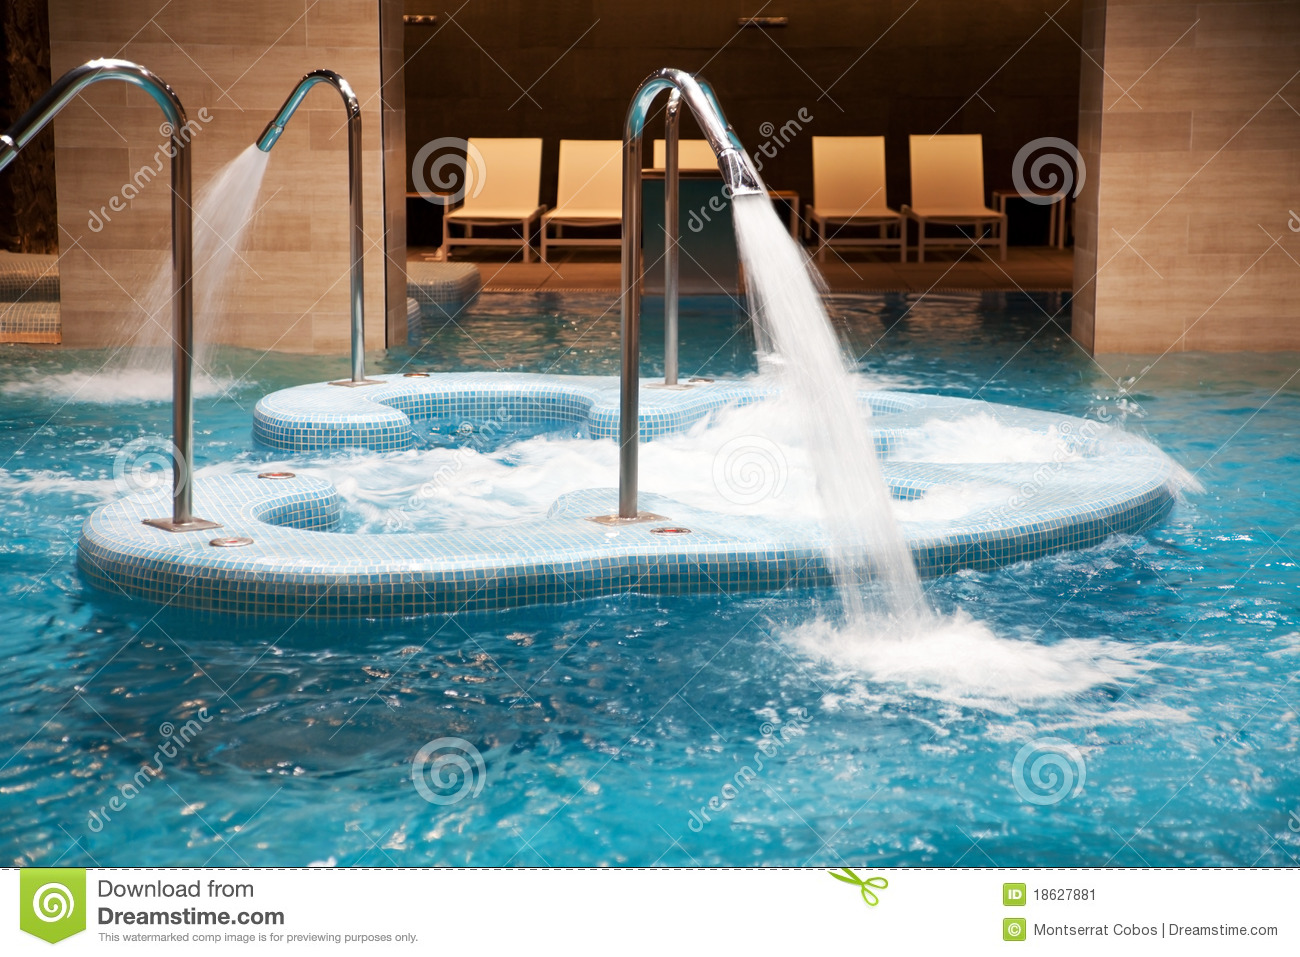 Spa pool in action stock image. Image of faucet, jacuzzy - 18627881